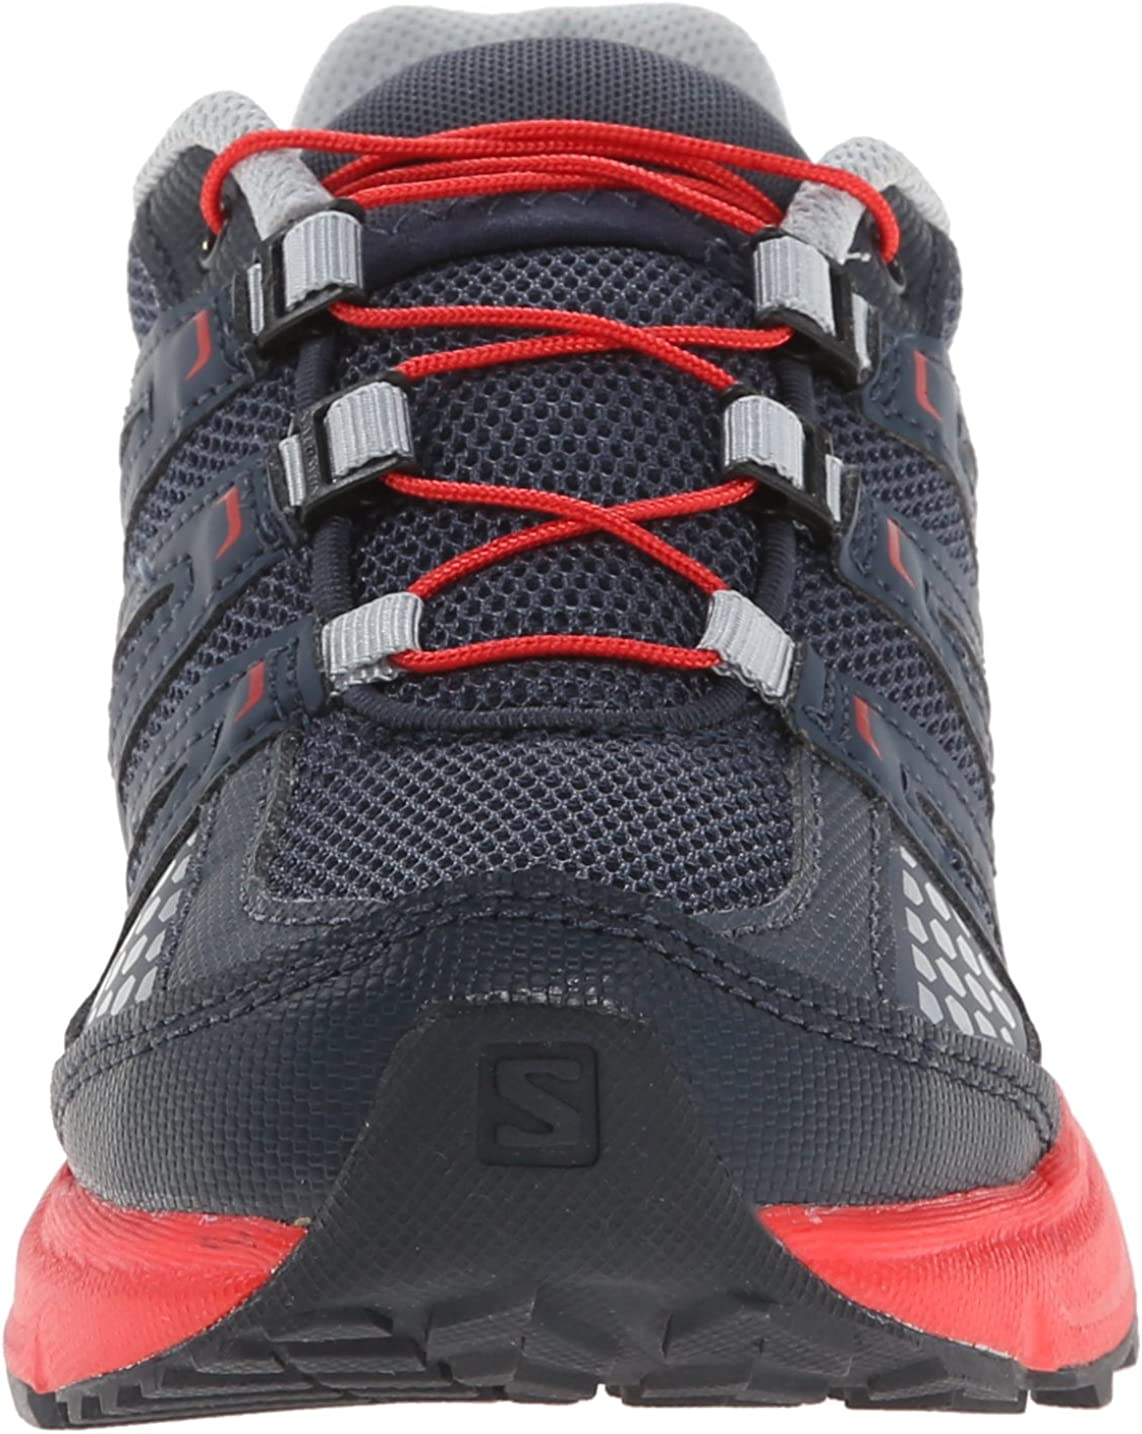 Salomon XR Mission J, Zapatillas de Trail Running Infantil, Gris - Grau (Grey Denim/Deep Blue/Bright Red), 36 EU: Amazon.es: Zapatos y complementos